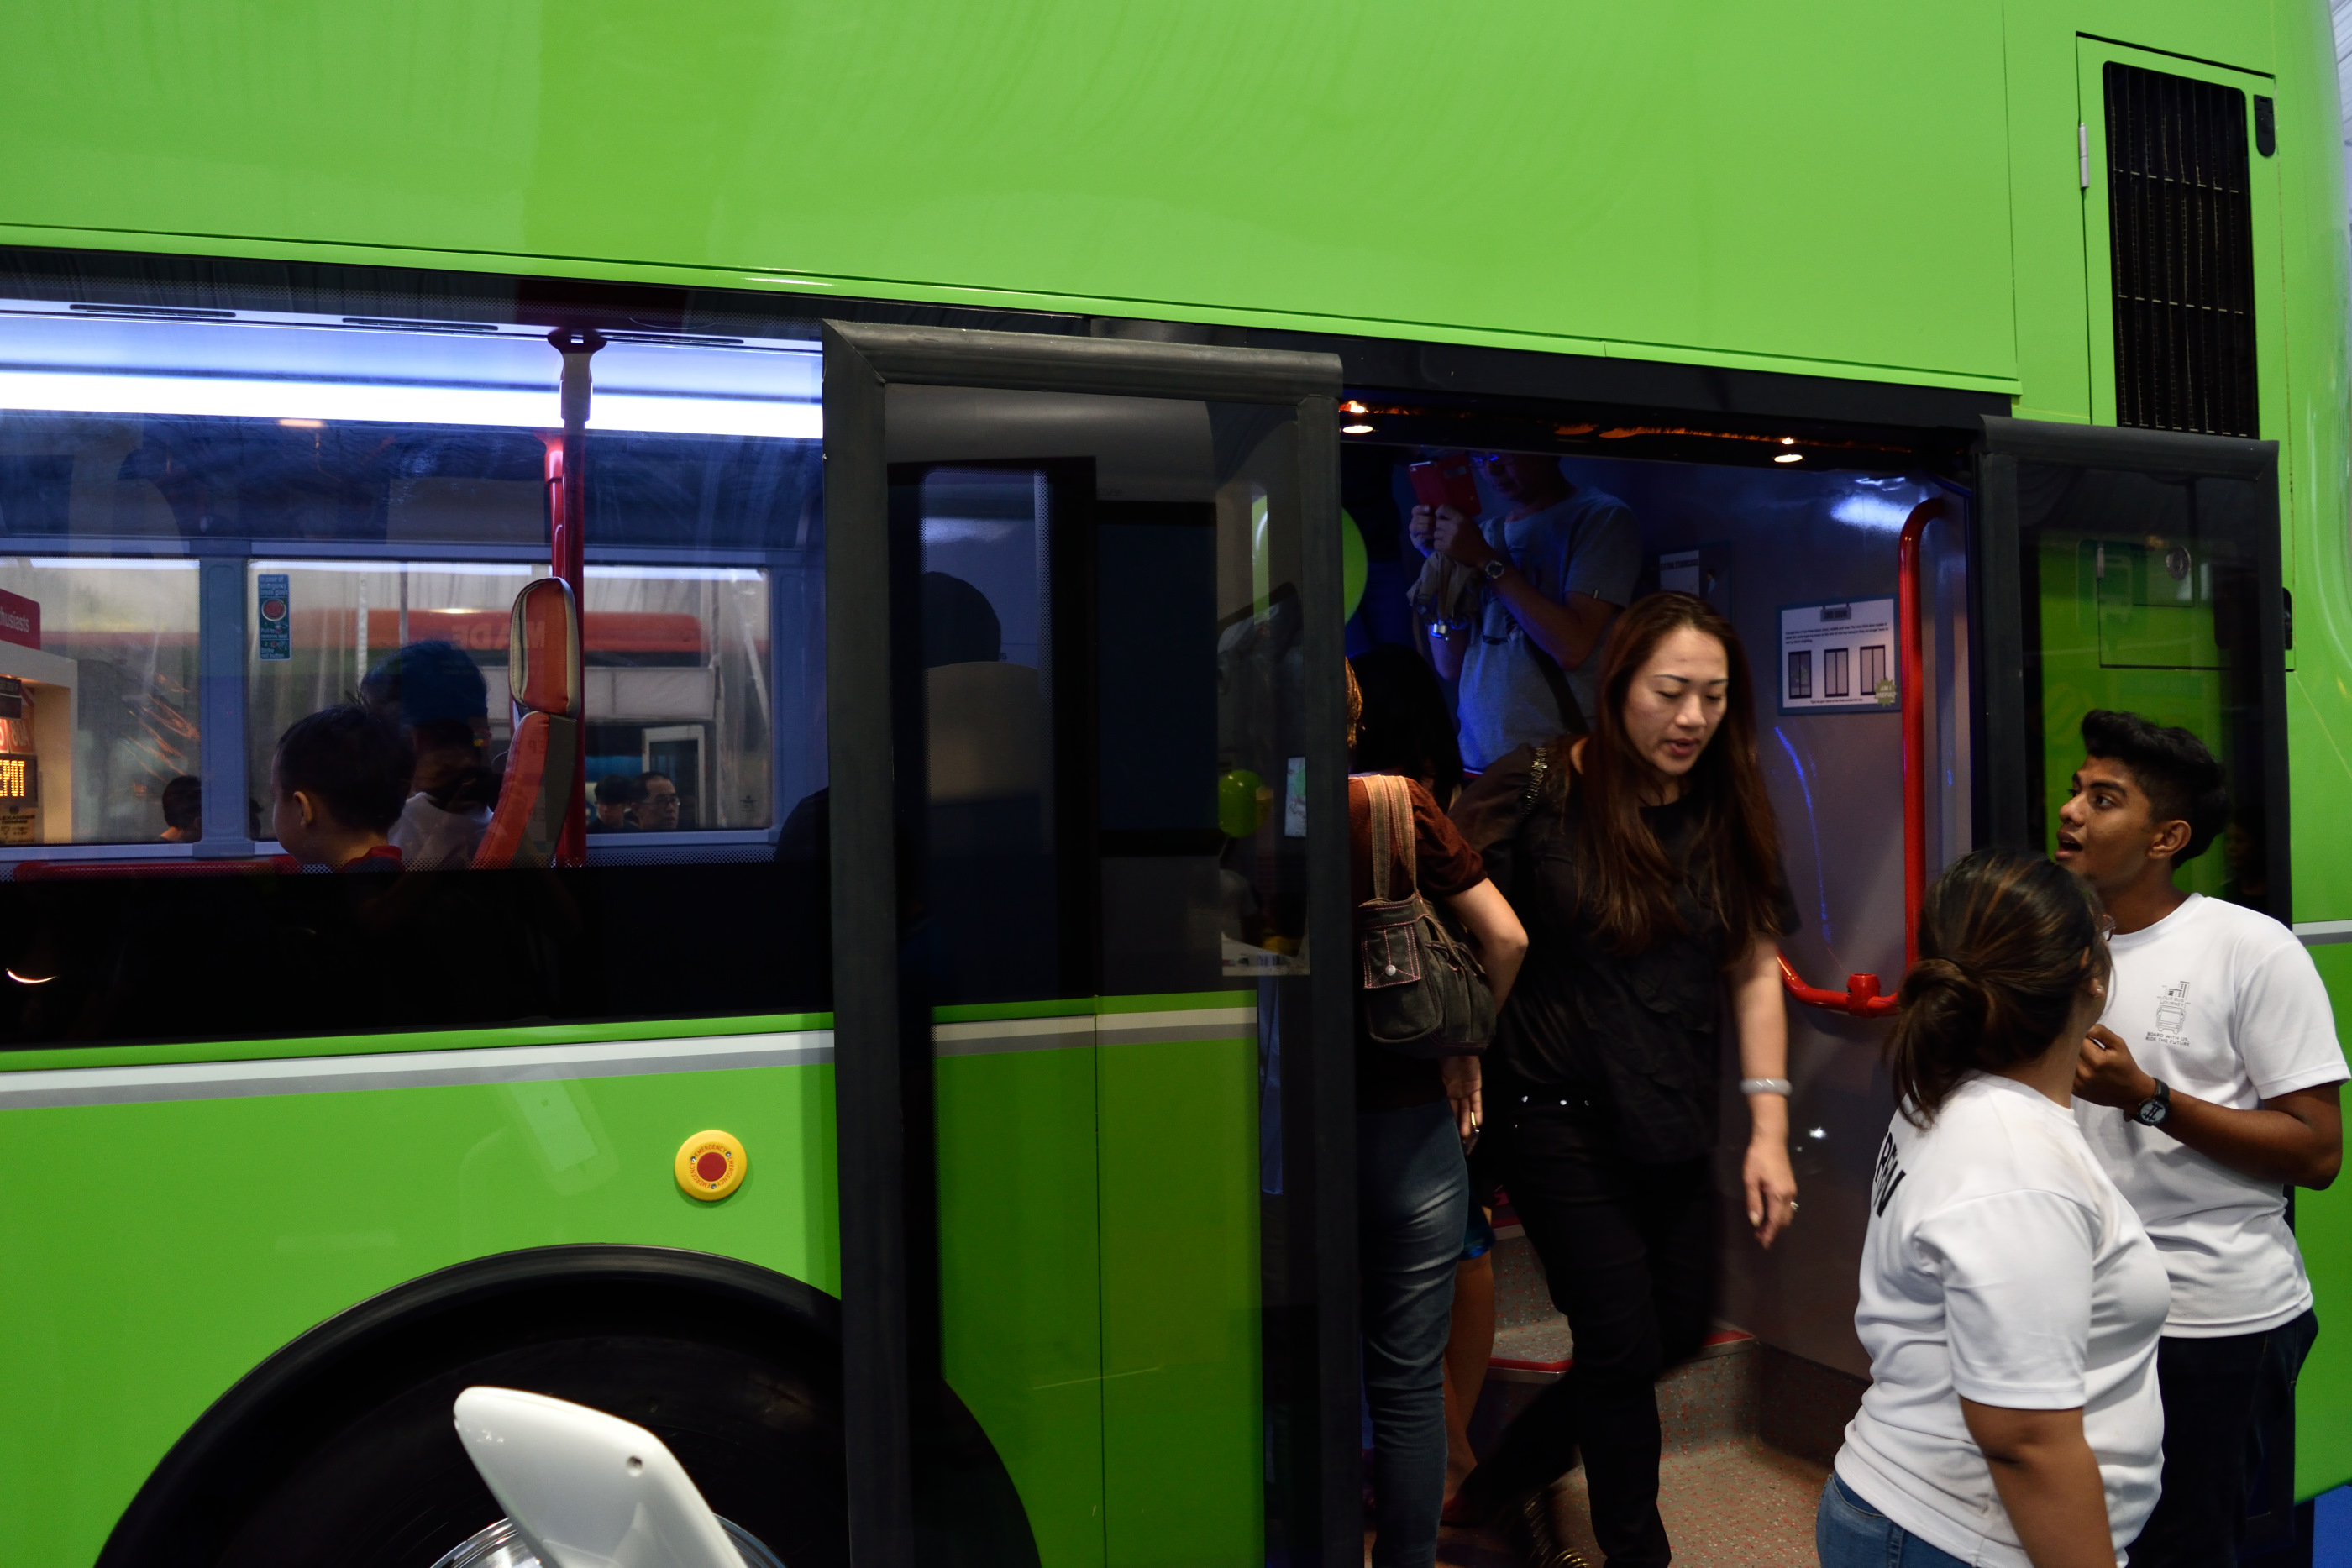 The rear third door design of Bus A